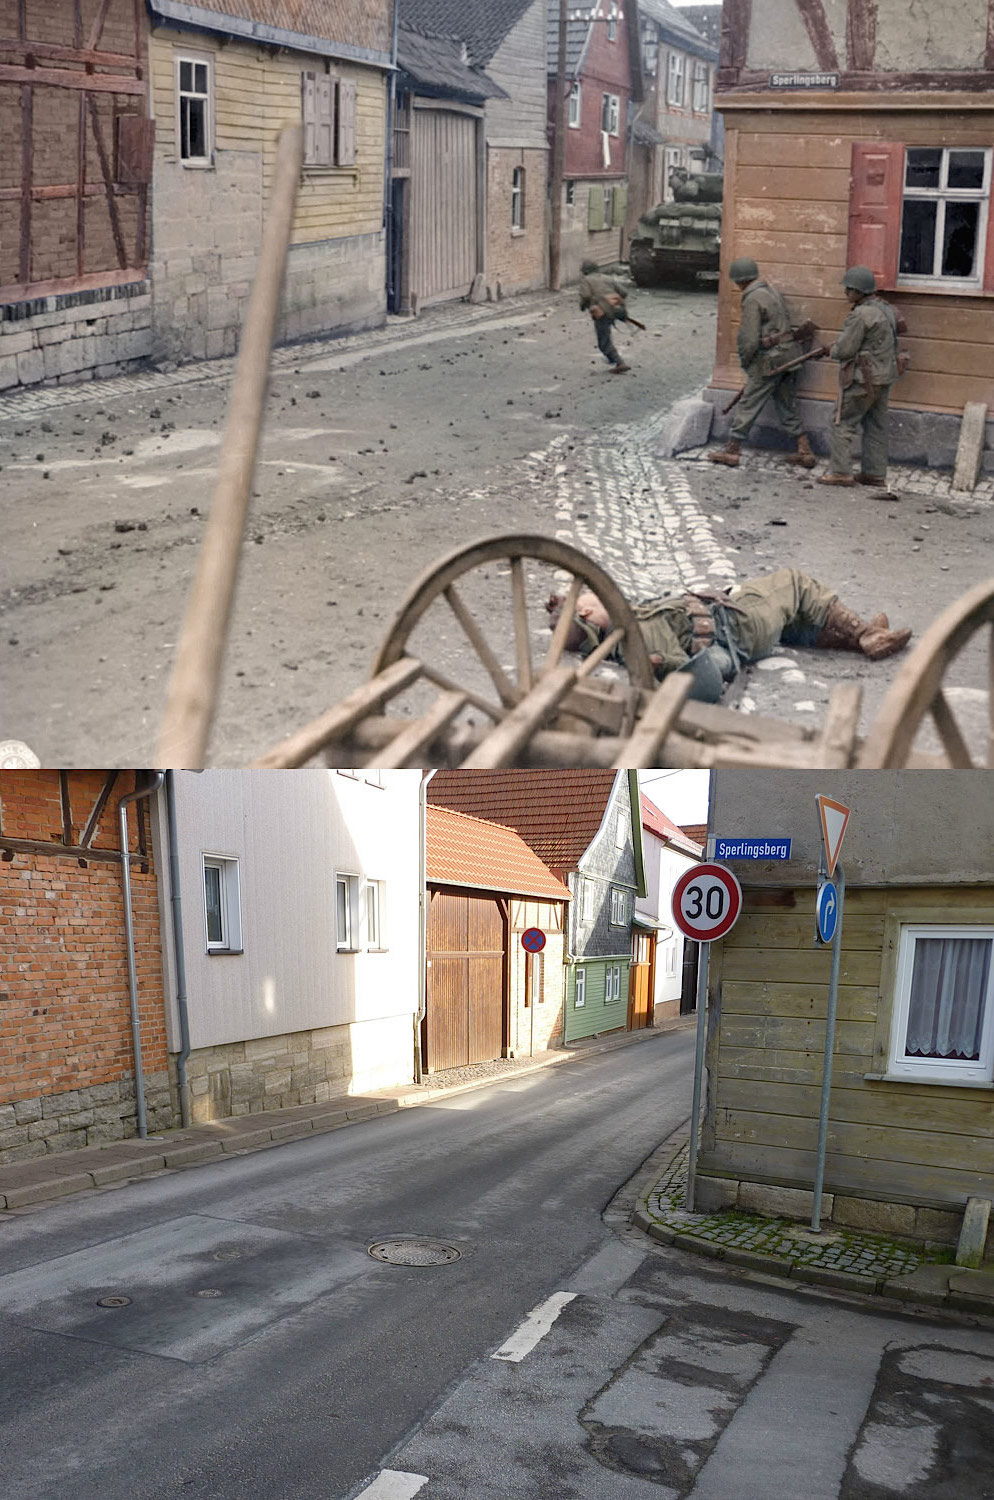 A street in Germany during WWII vs today